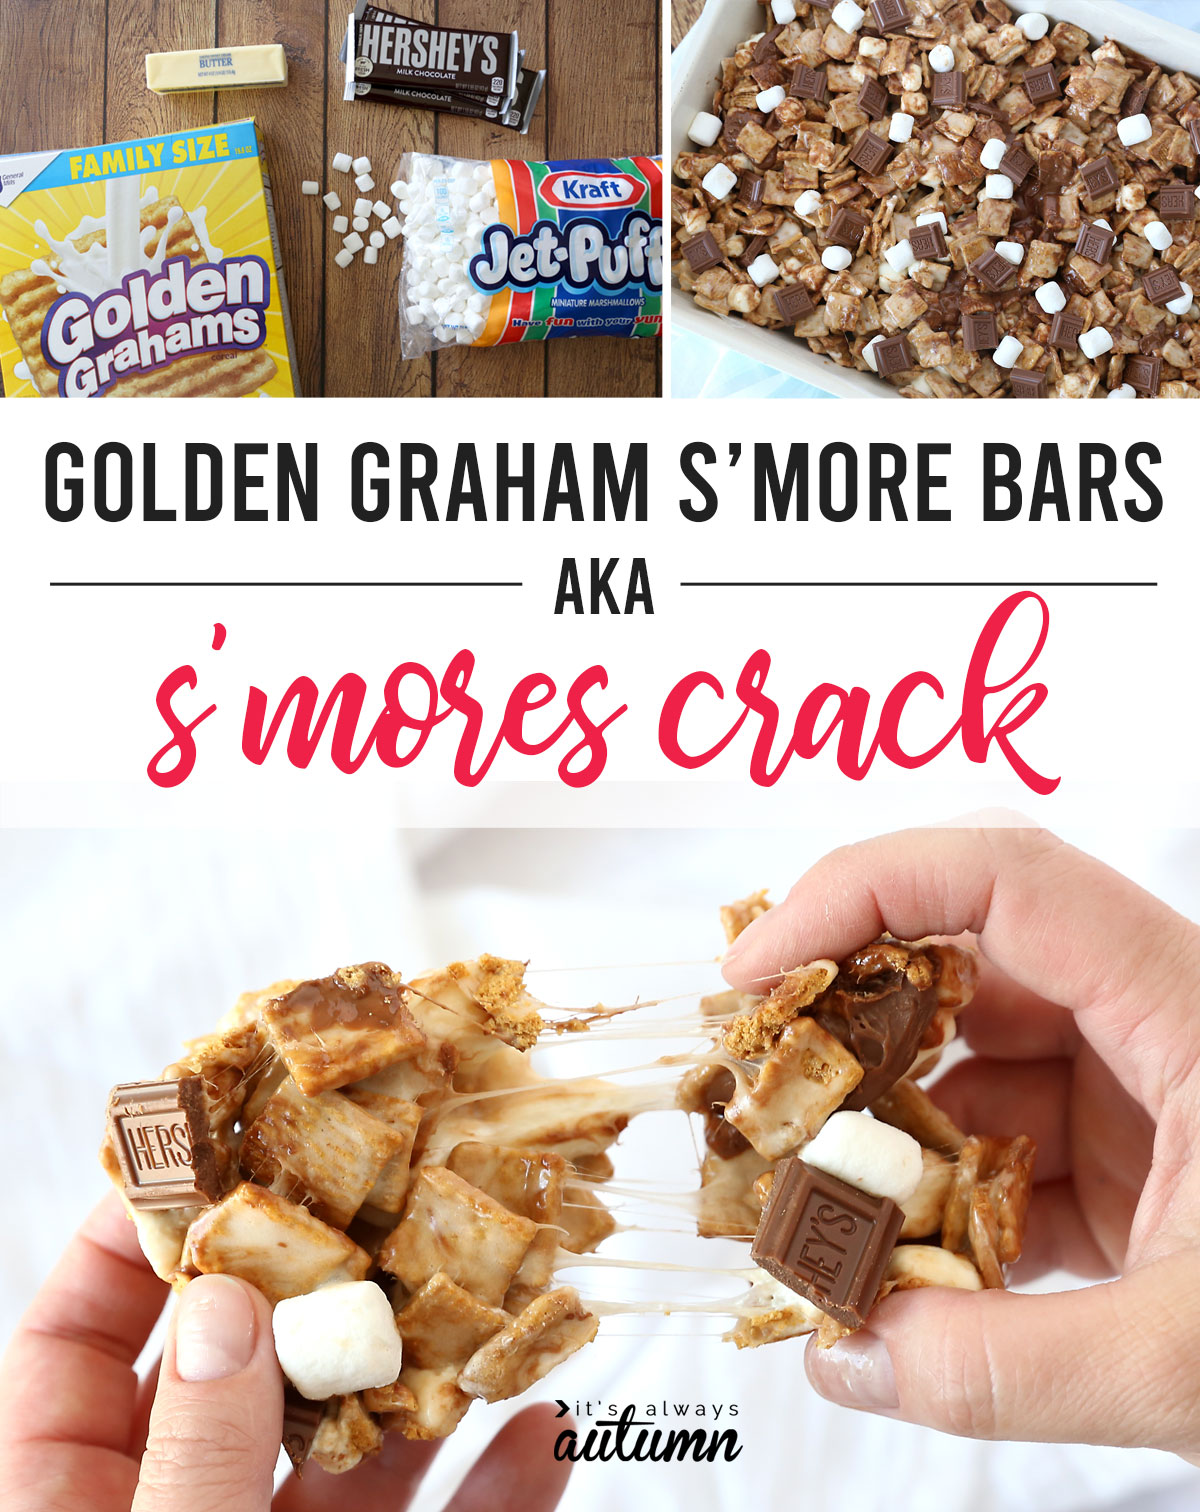 These Golden Graham bars are SO GOOD! We call them S'mores Crack because you can't stop eating them.